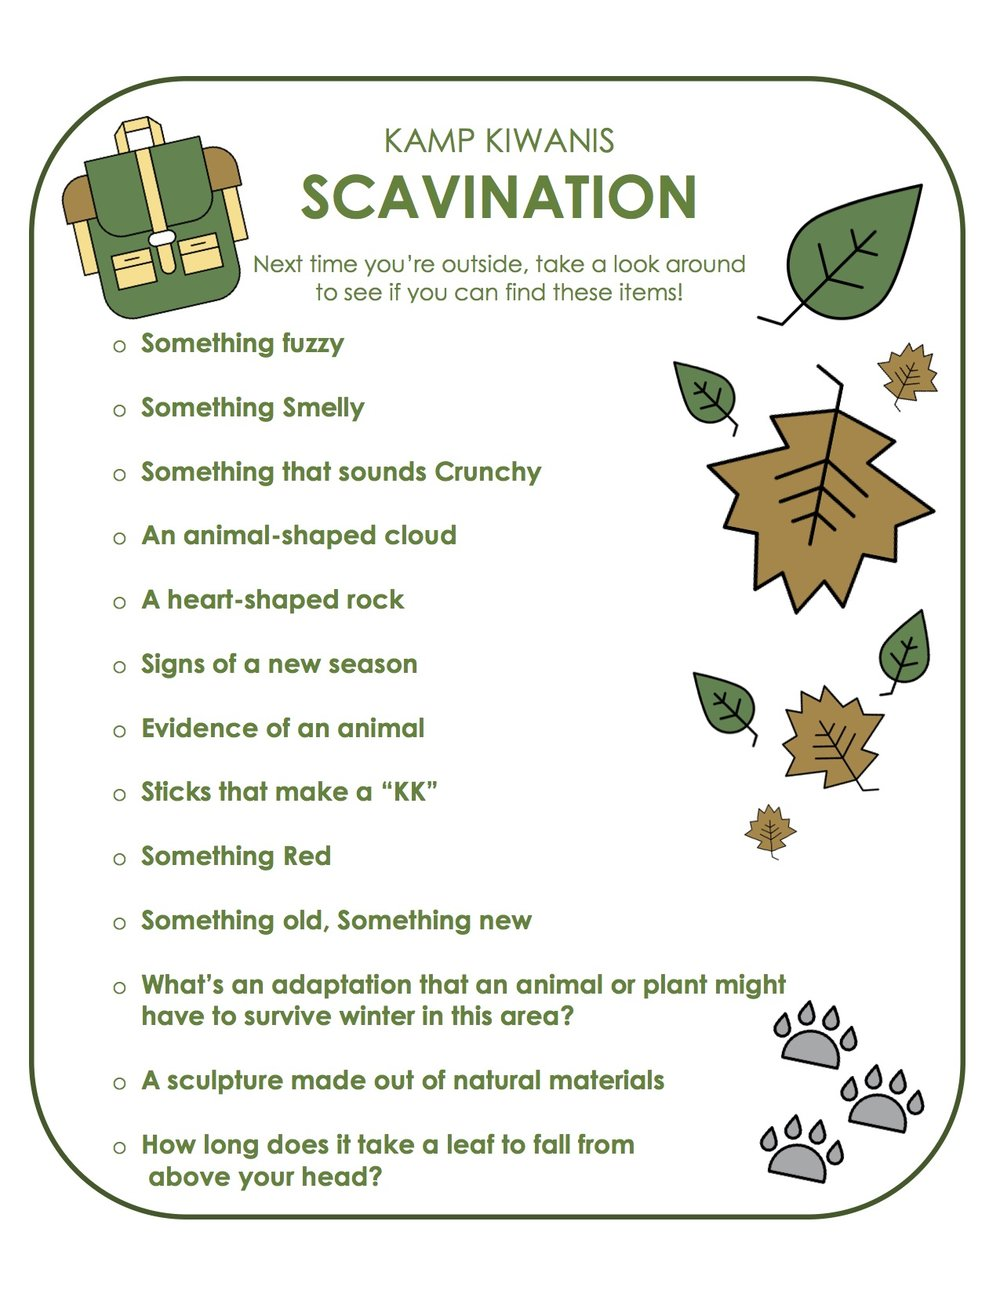 Scavination List